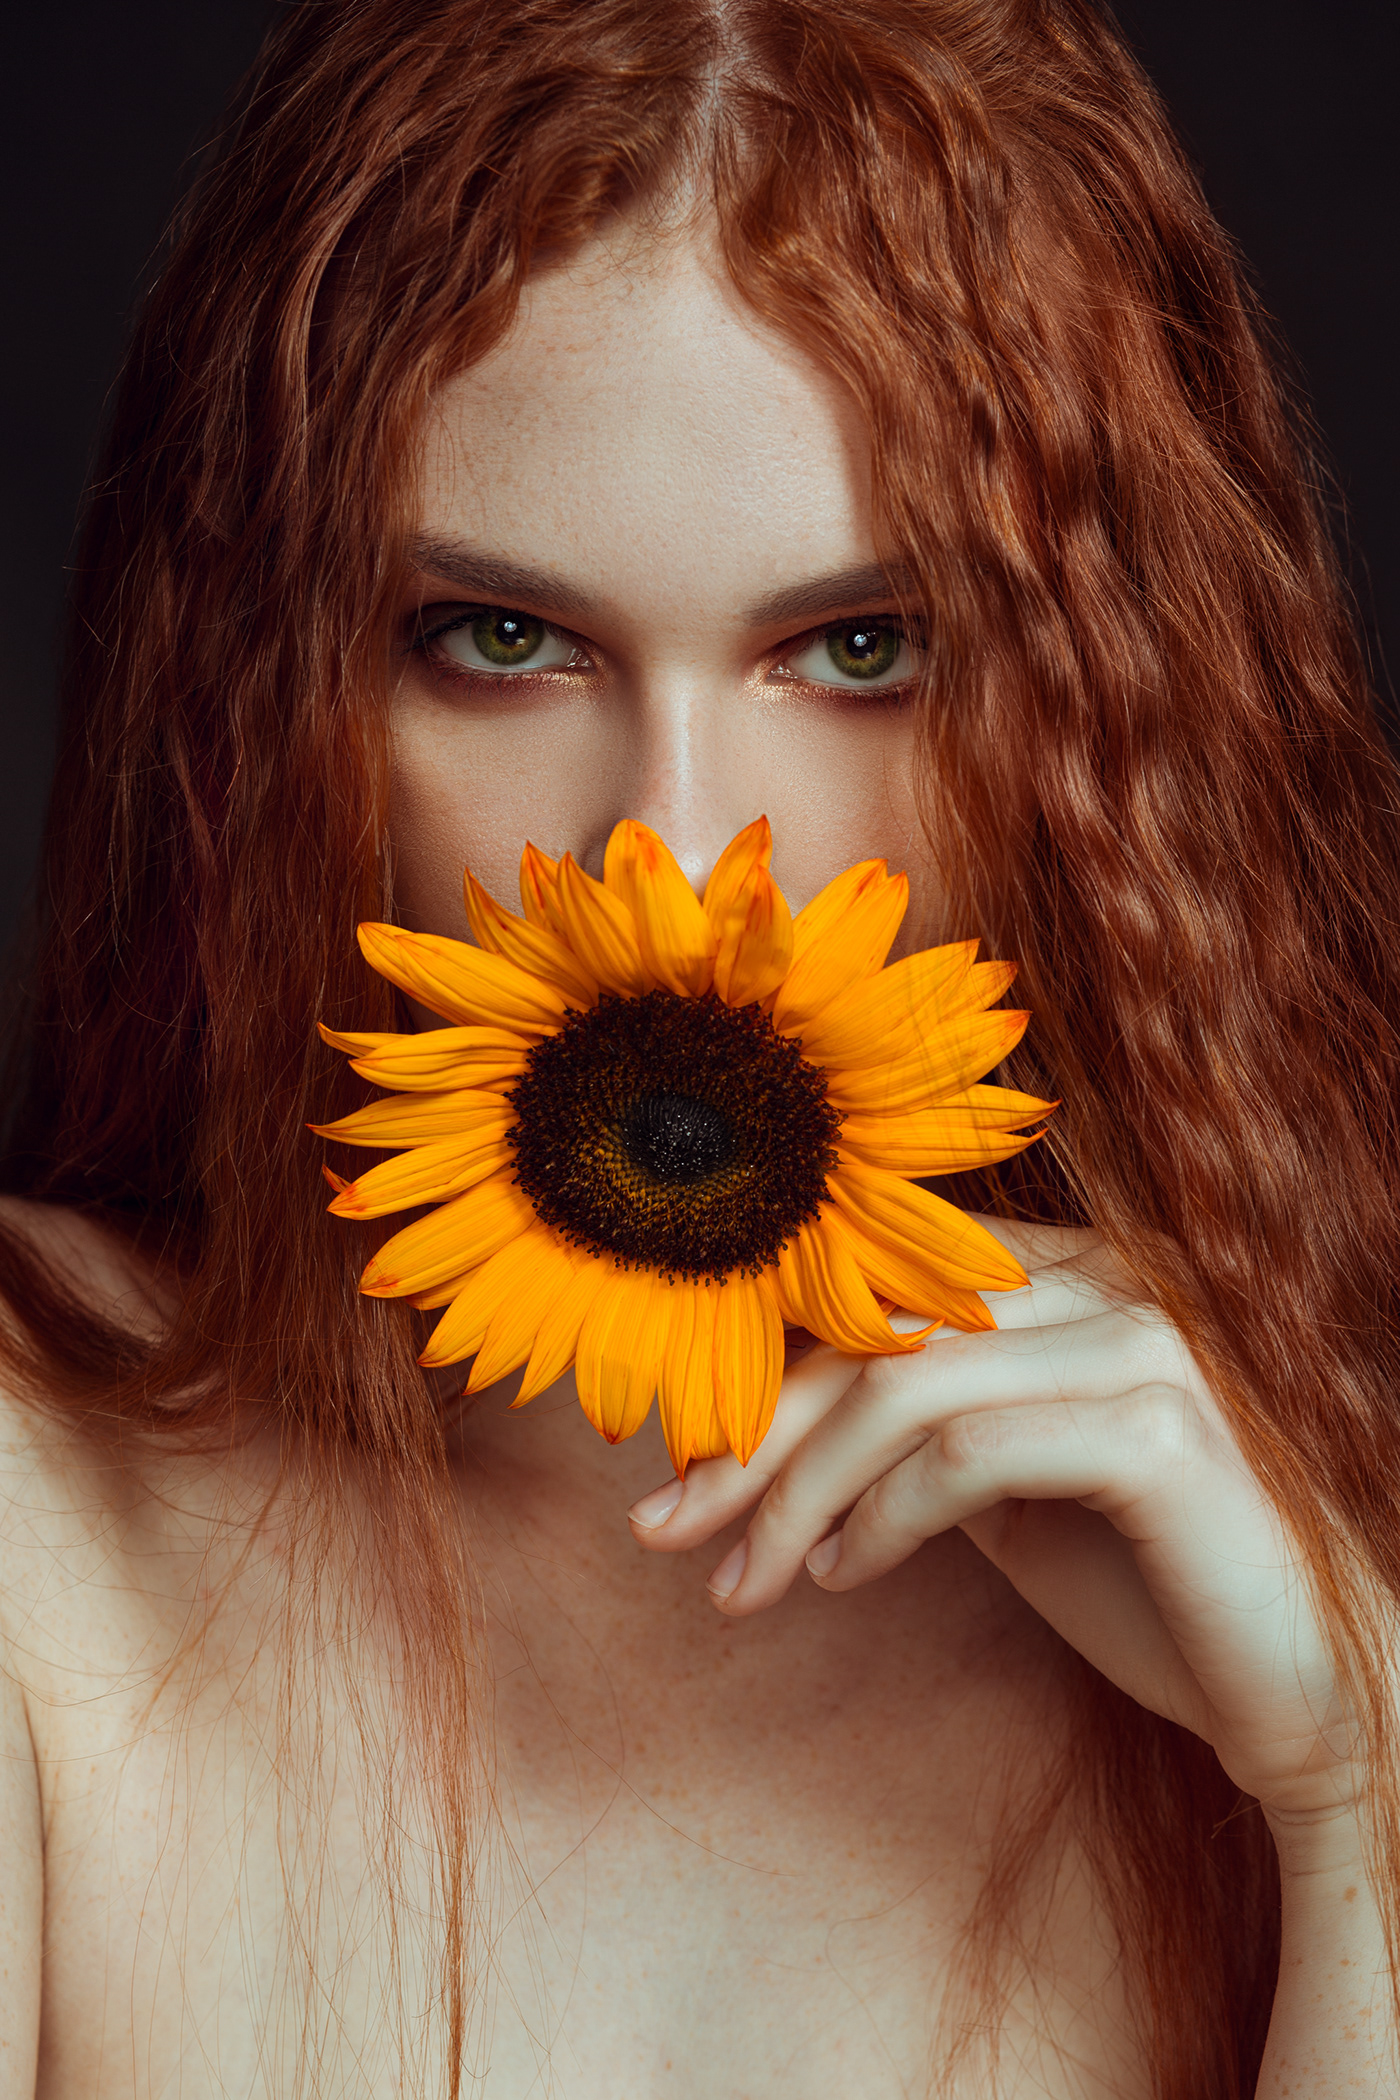 Image may contain: person, flower and sunflower